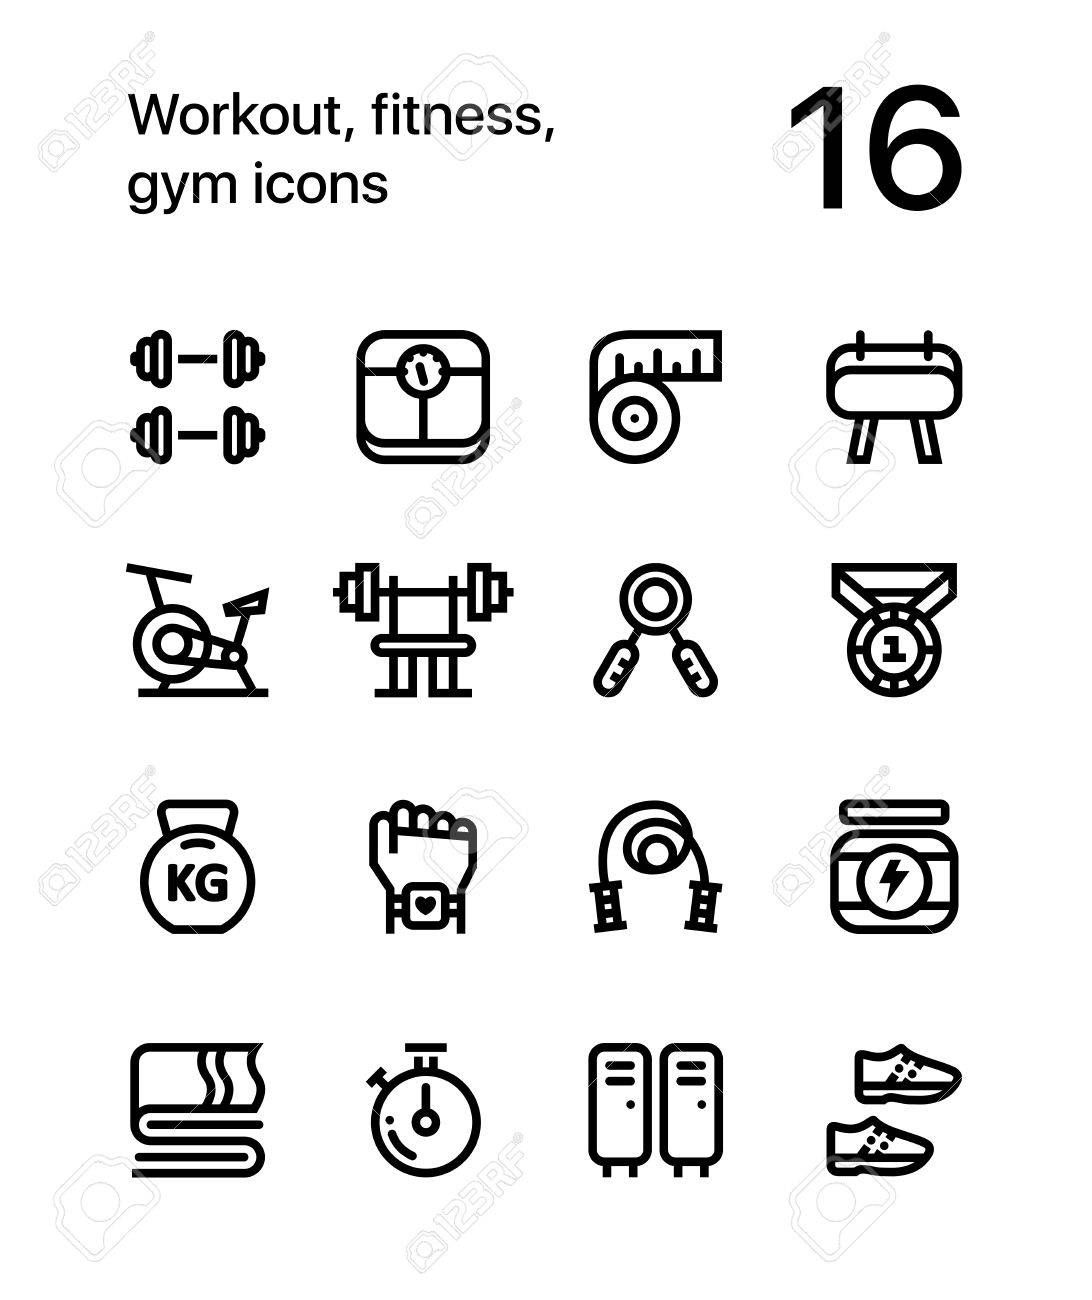 Workout, fitness, gym icons for web and app. Illustration